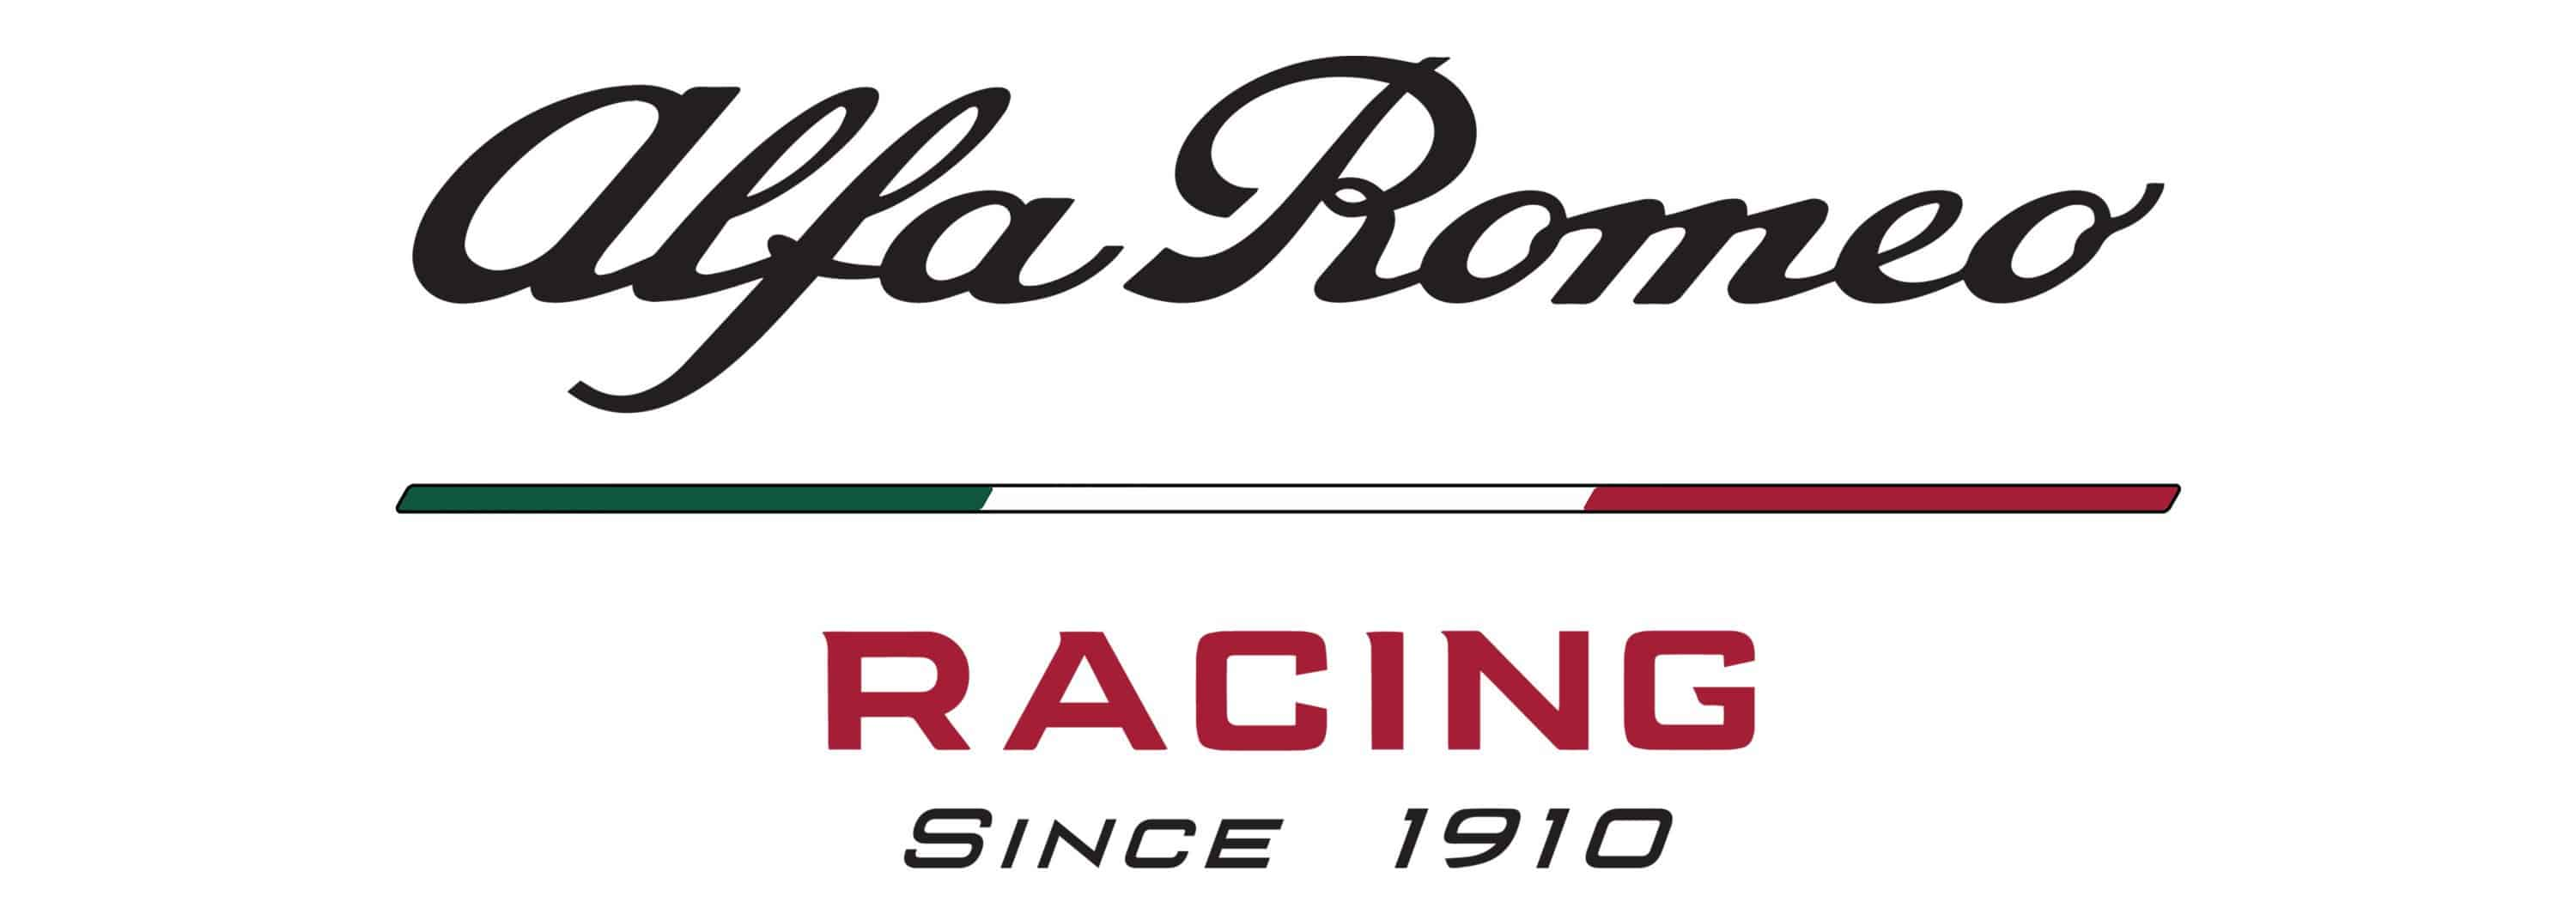 2019 F1 Alfa Romeo Racing logo hi red HD Photo Alfa Romeo Edited by MAXF1net